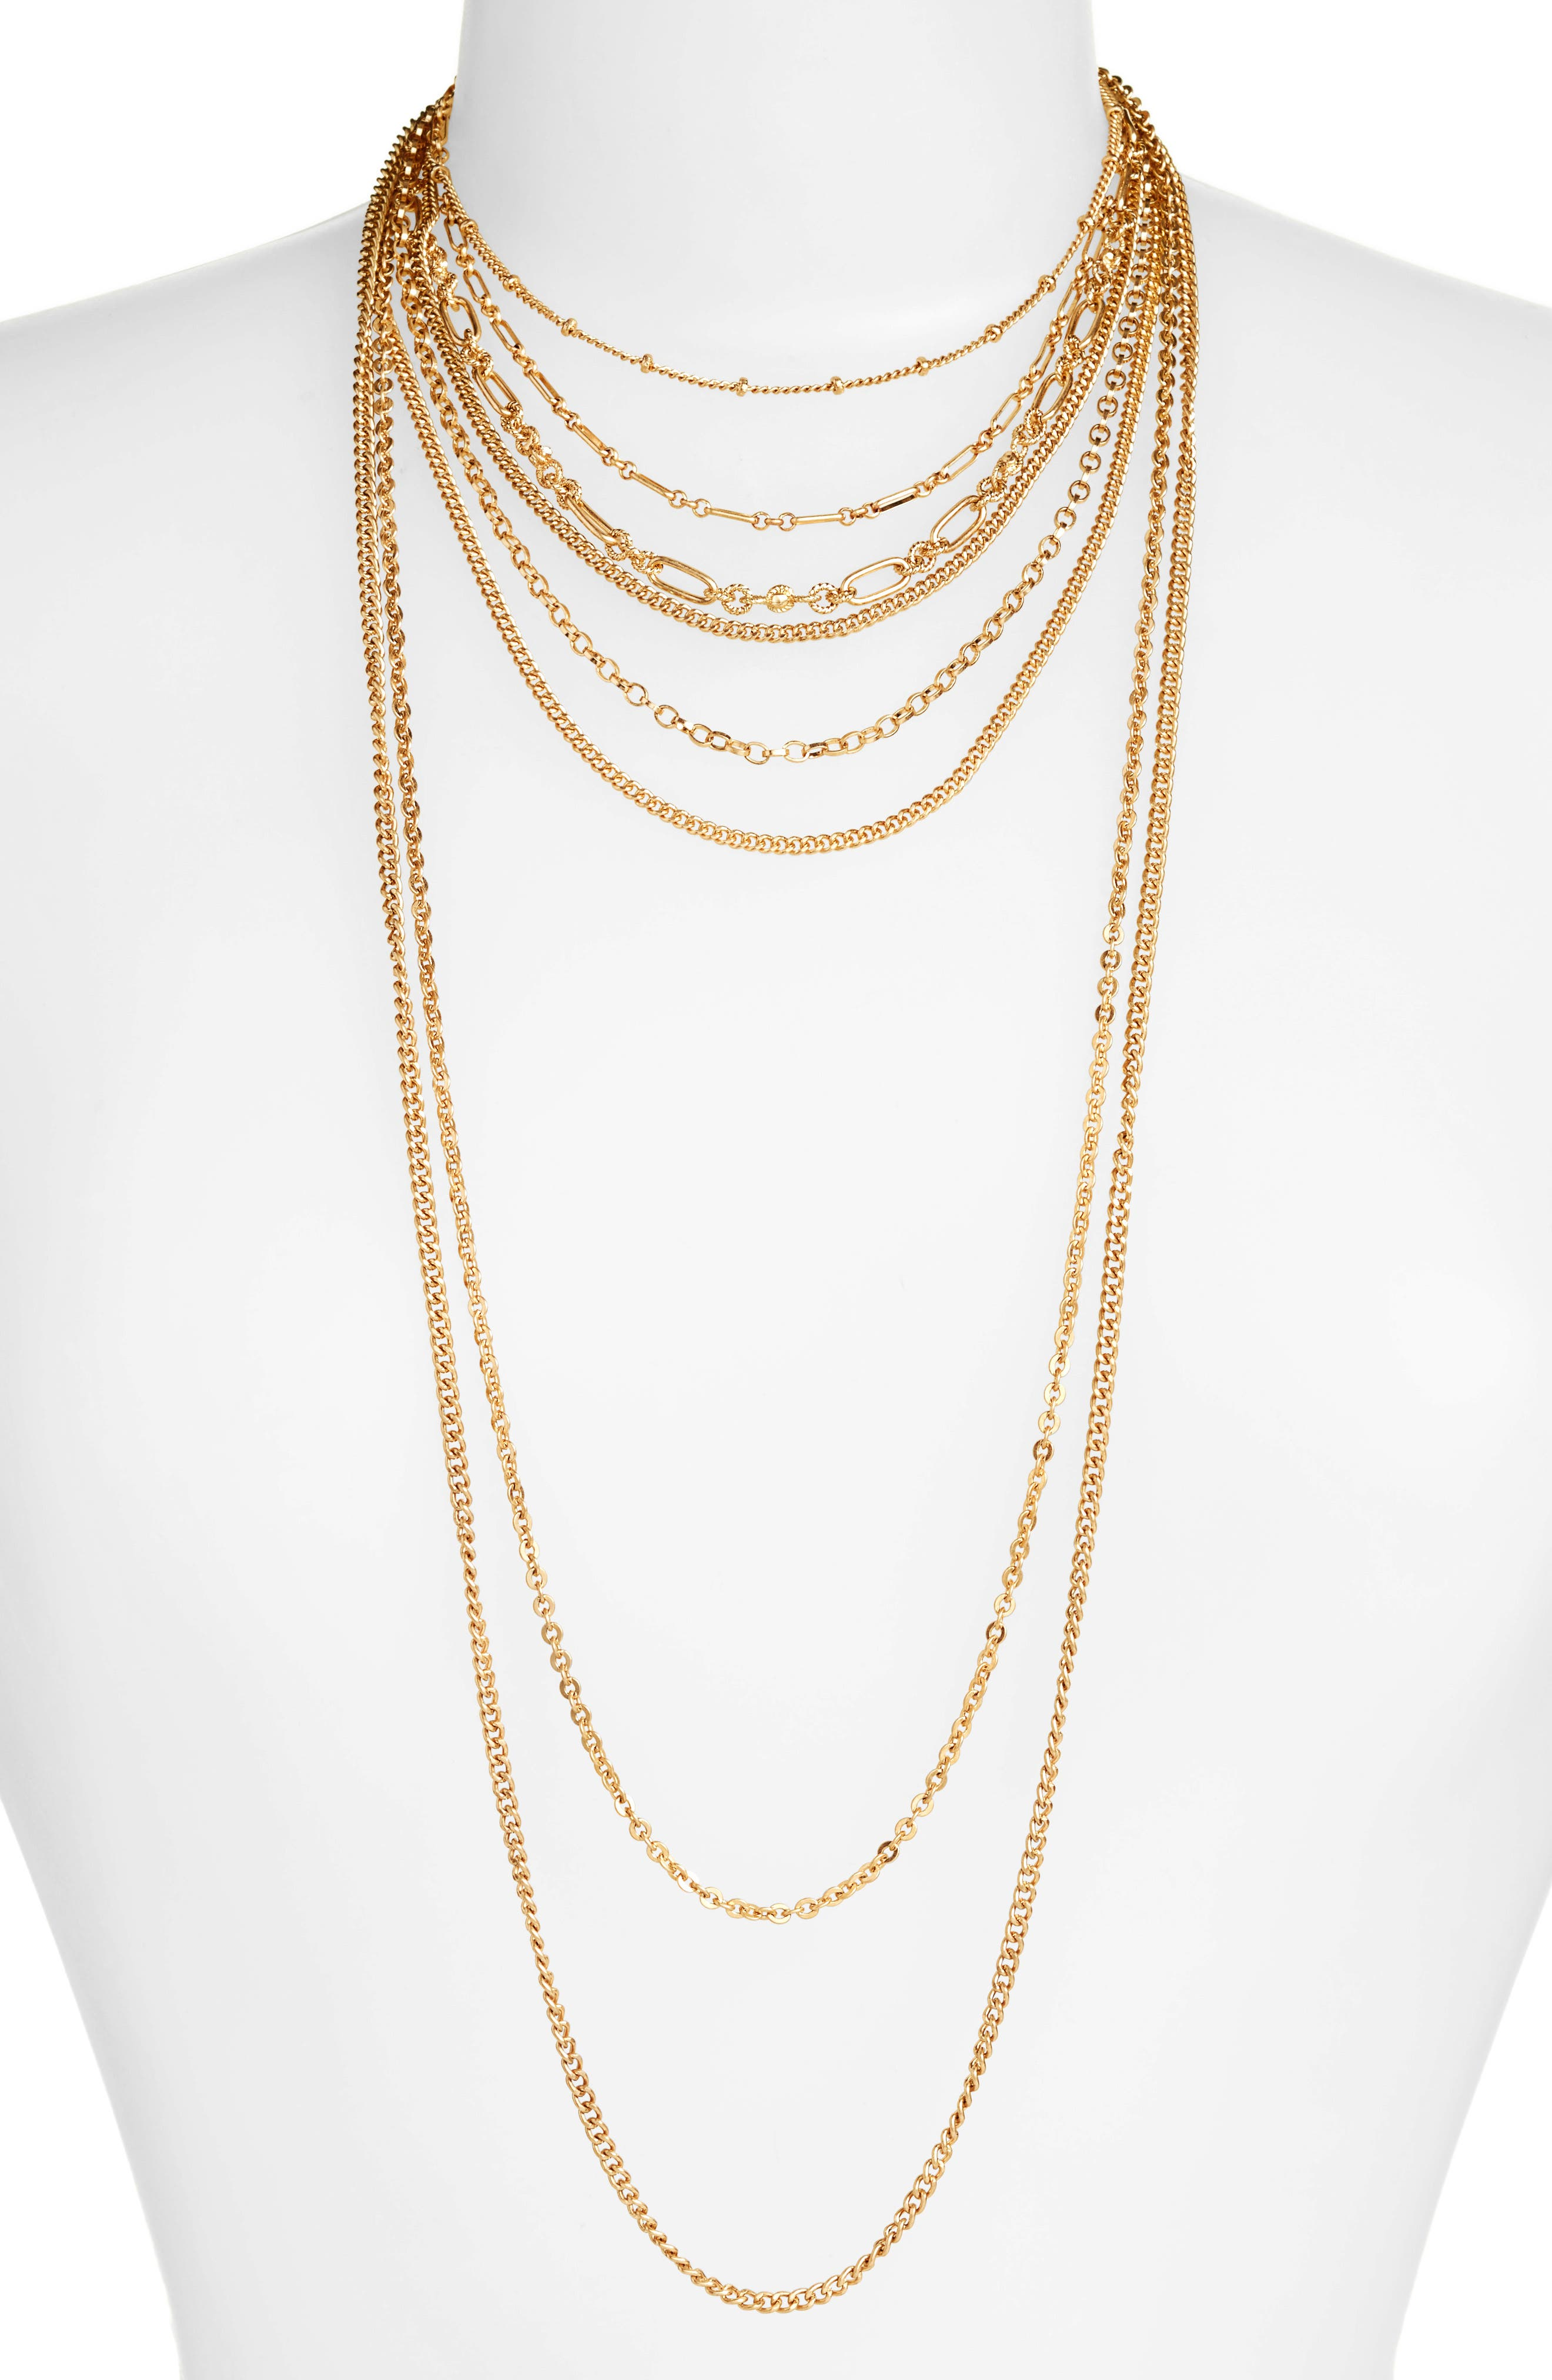 Treasure & Bond Multistrand Textured Chain Necklace